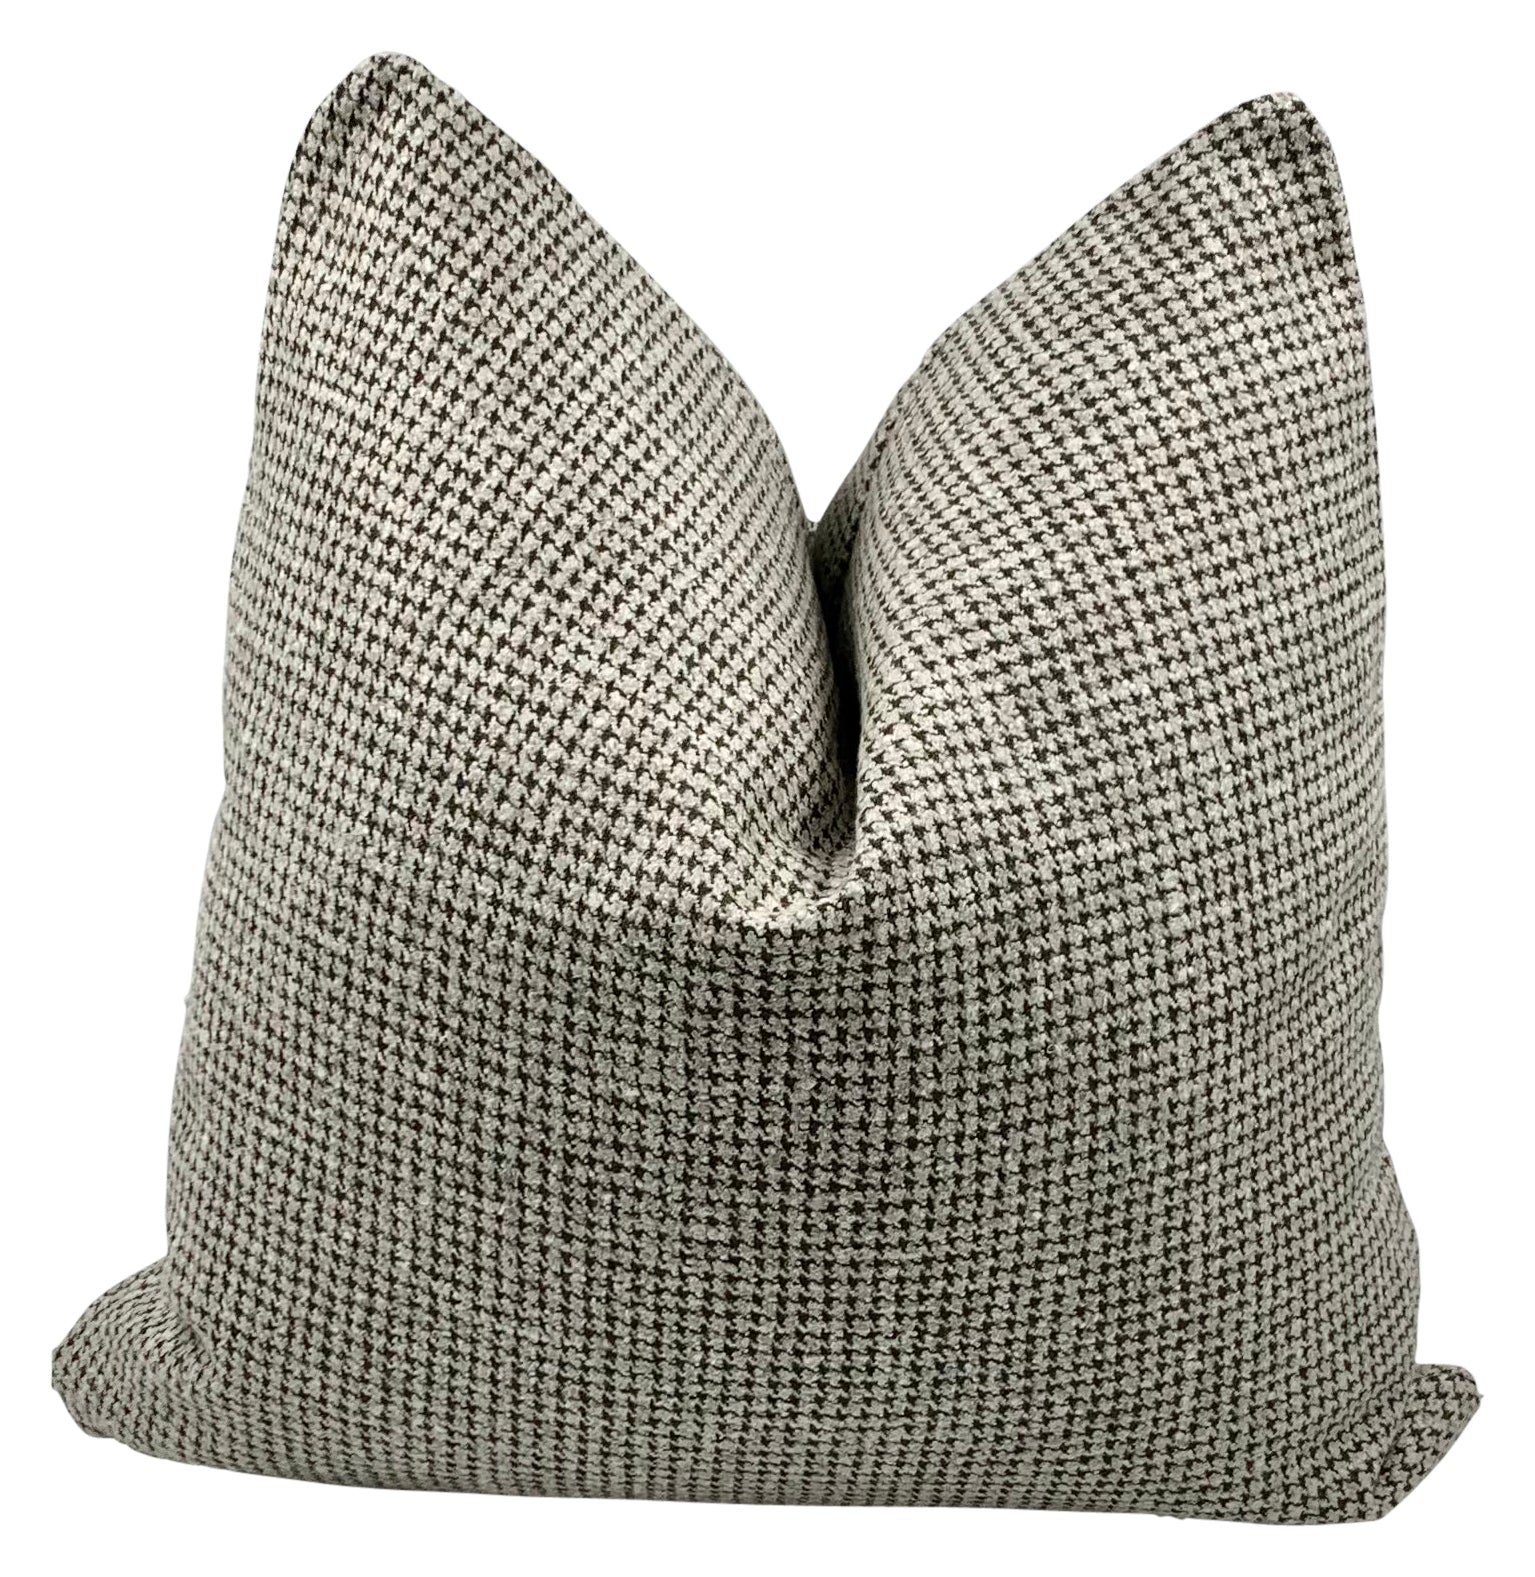 Handstitched Houndstooth Pillow